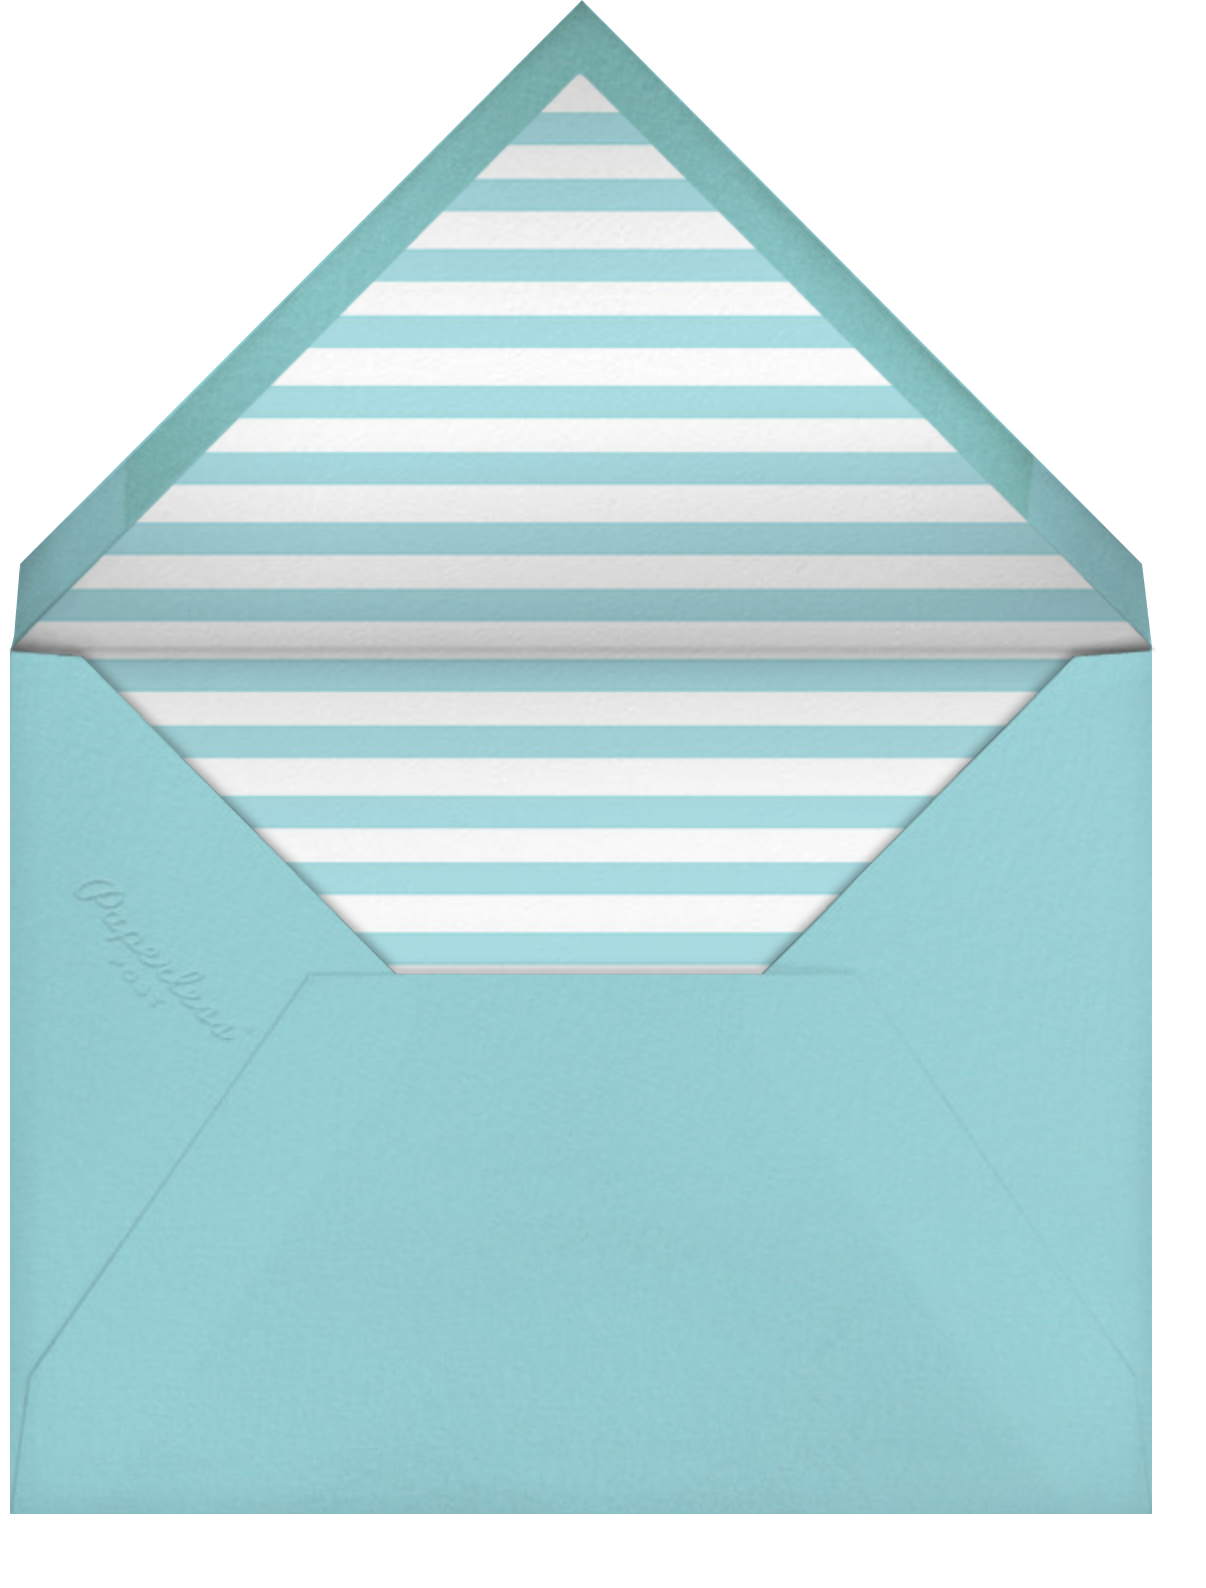 Quint - Caribbean/Rose Gold - Paperless Post - Kids' birthday - envelope back